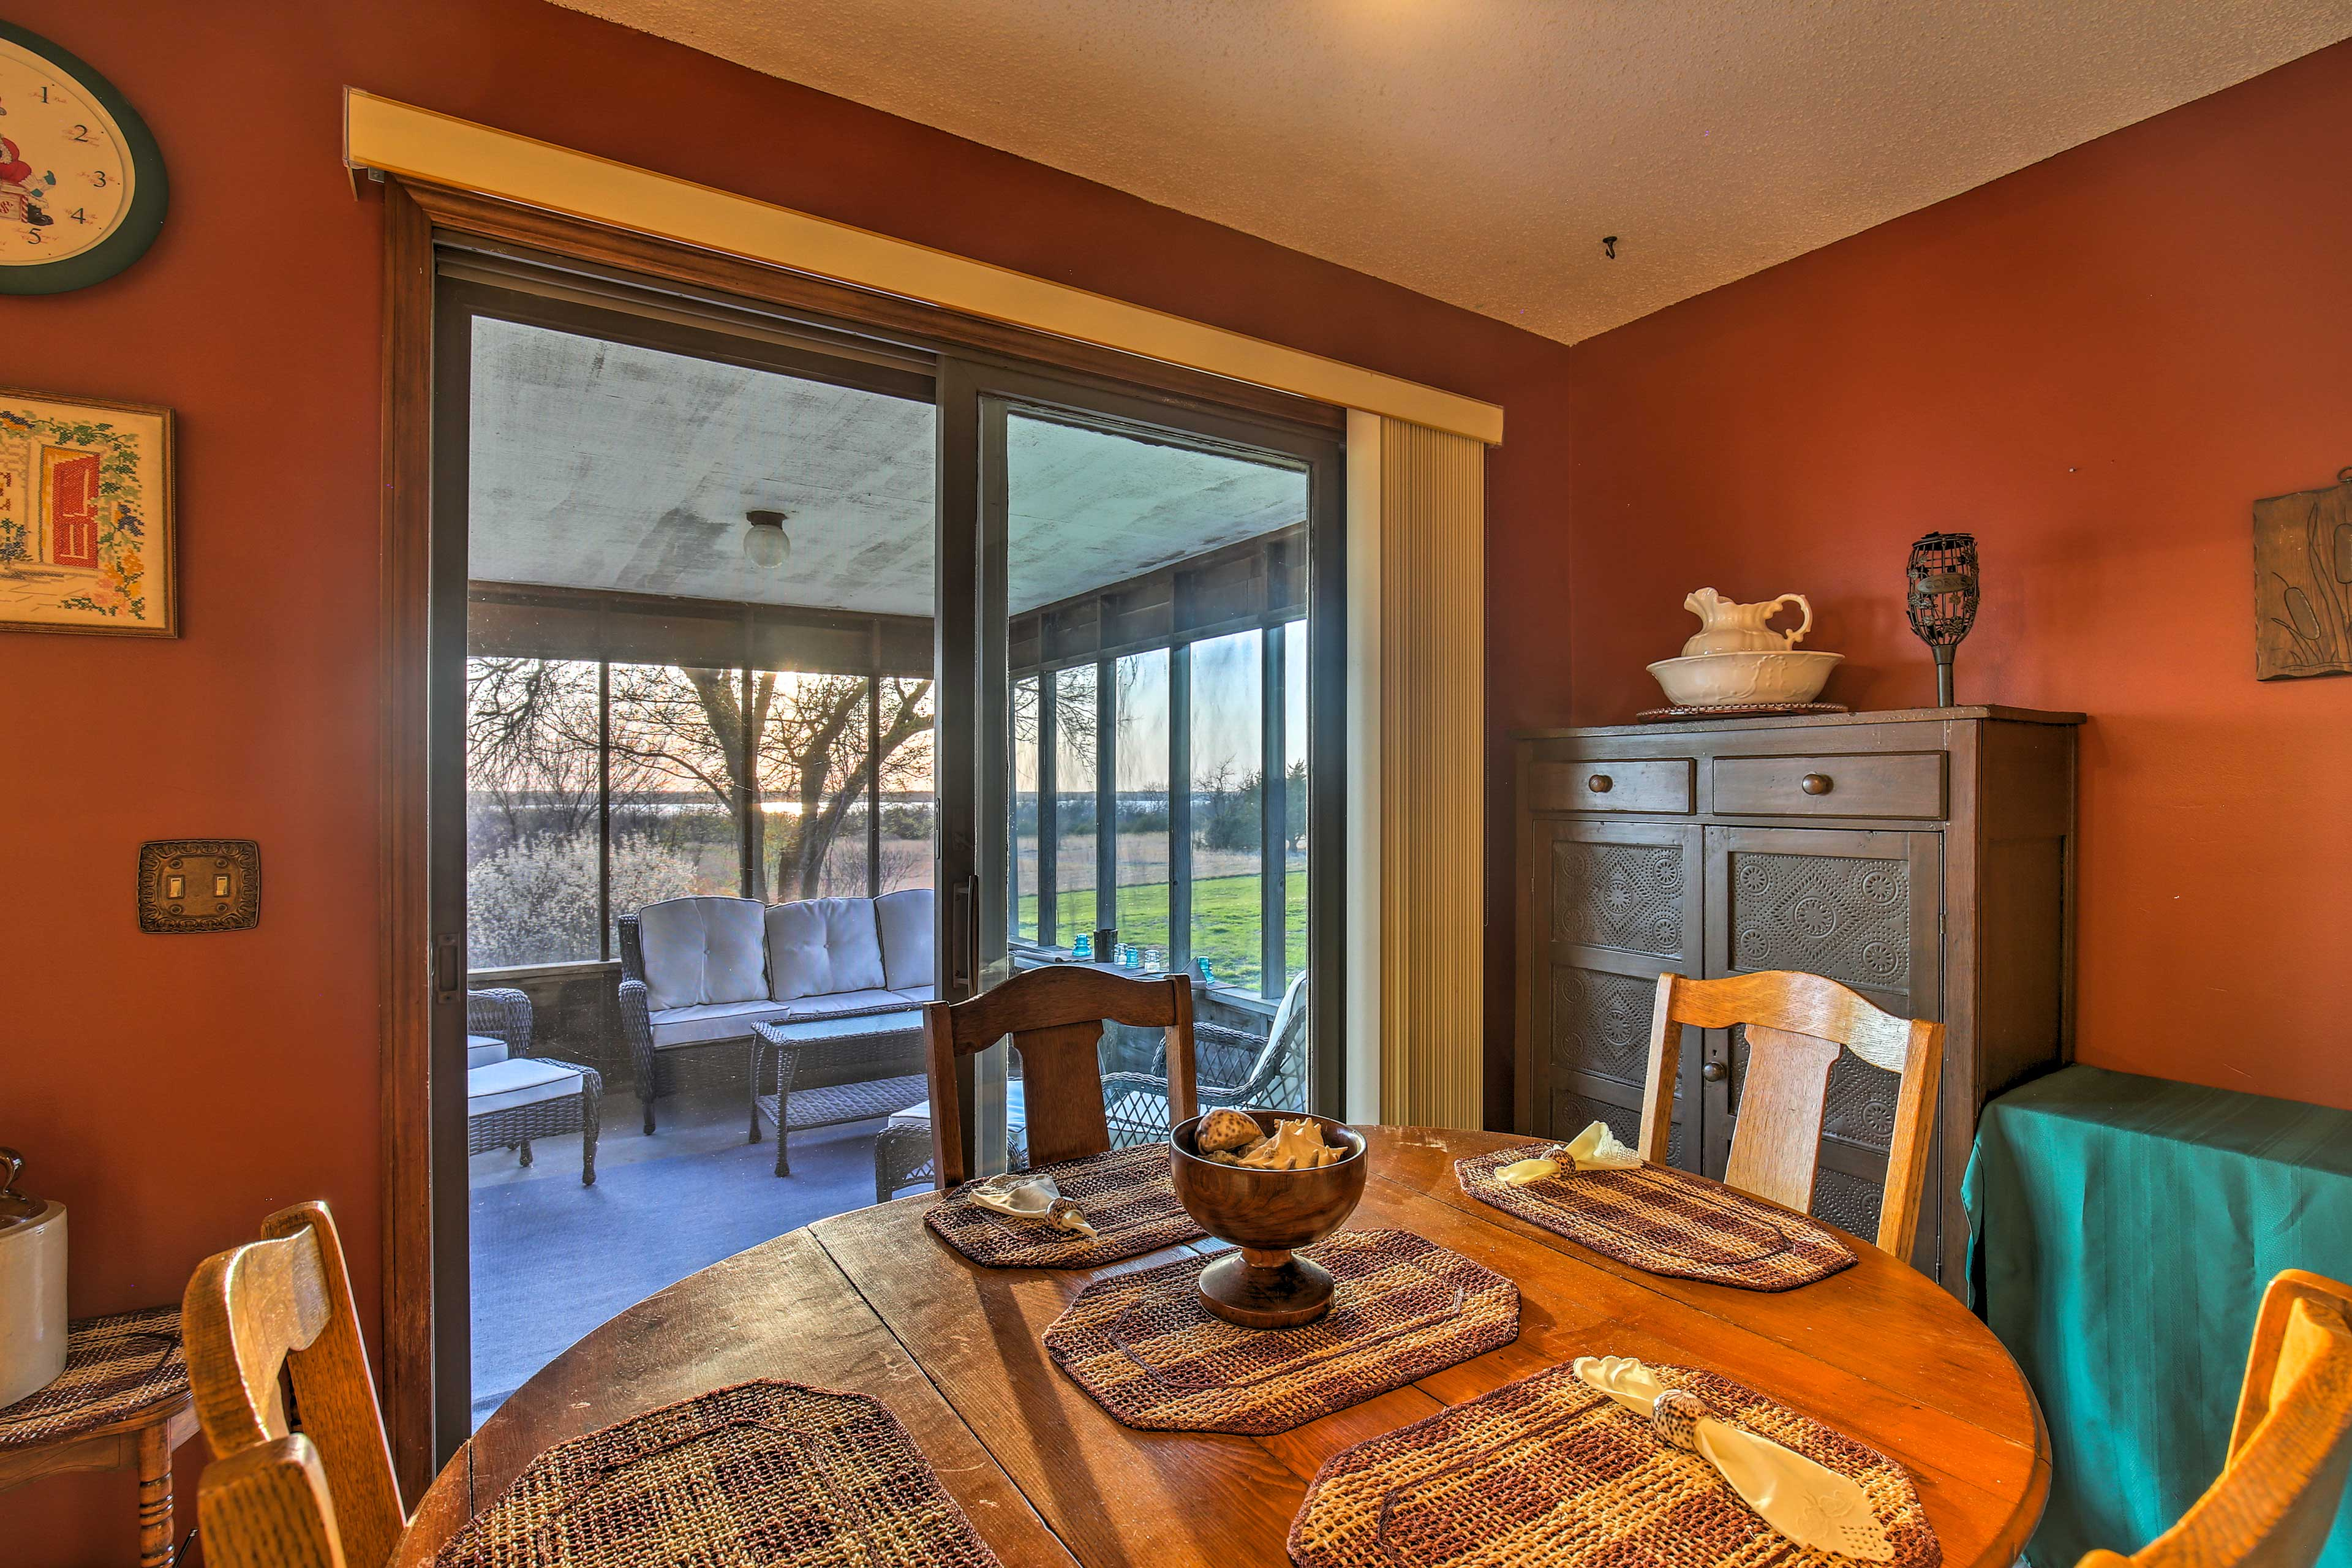 Dine at the 4-person kitchen table as natural light floods in the glass doors.